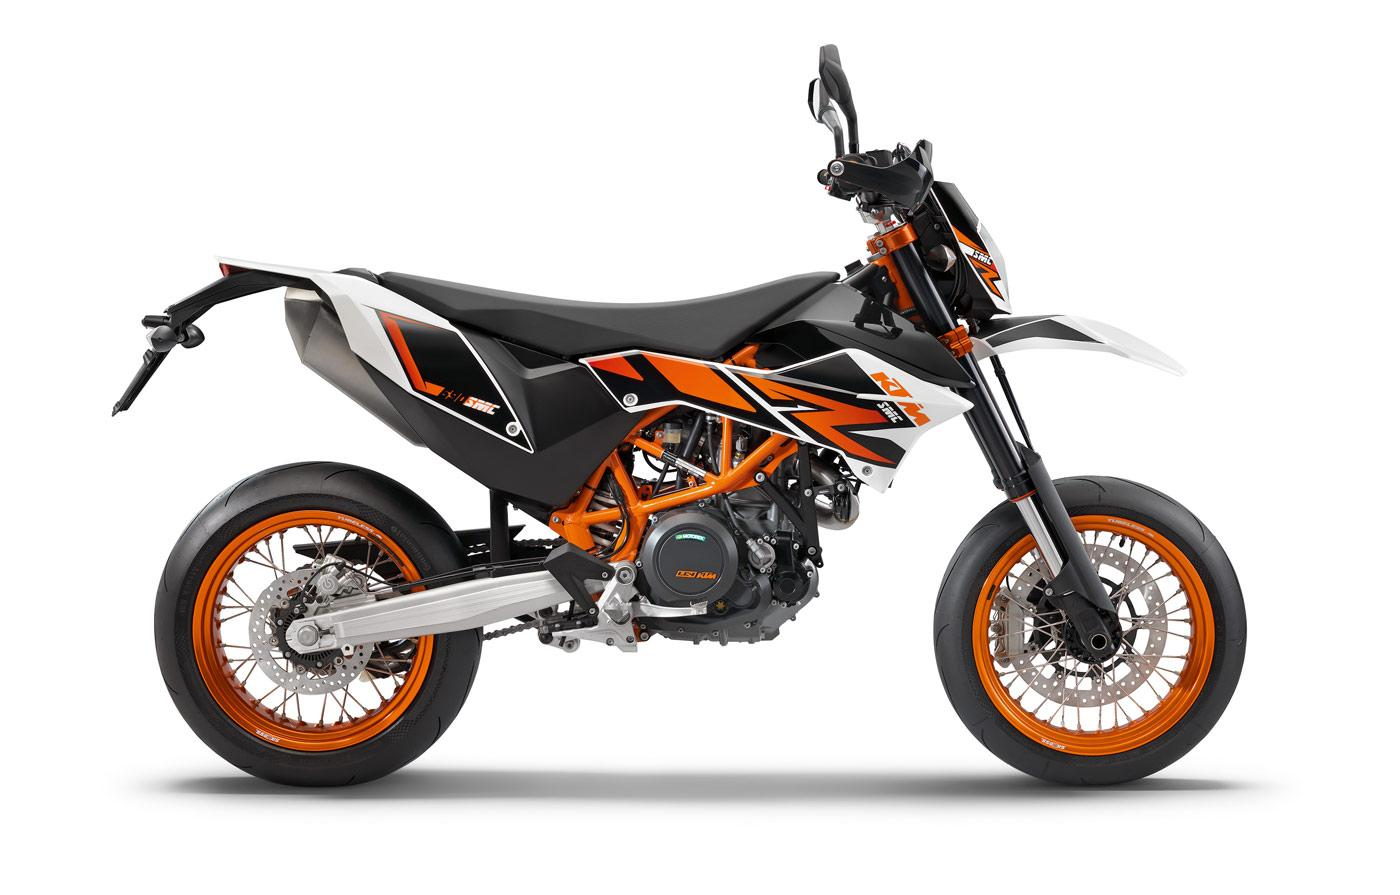 ktm 690 smc r fiche technique avis et prix la poign e dans l 39 angle. Black Bedroom Furniture Sets. Home Design Ideas